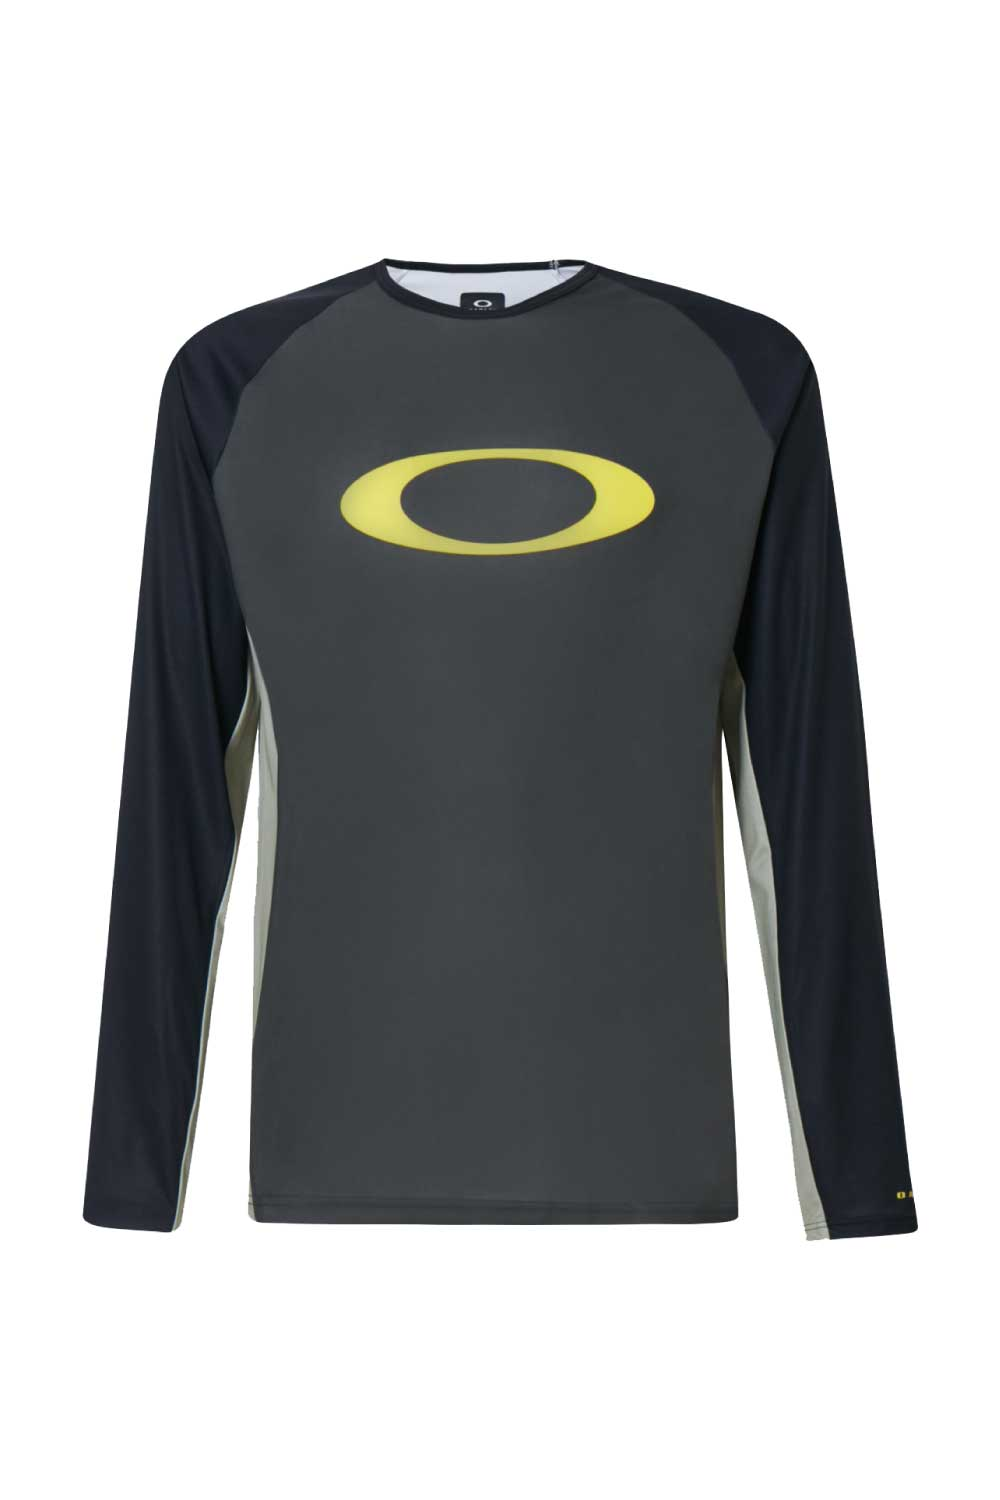 Oakley Long Sleeve Tech T-Shirt